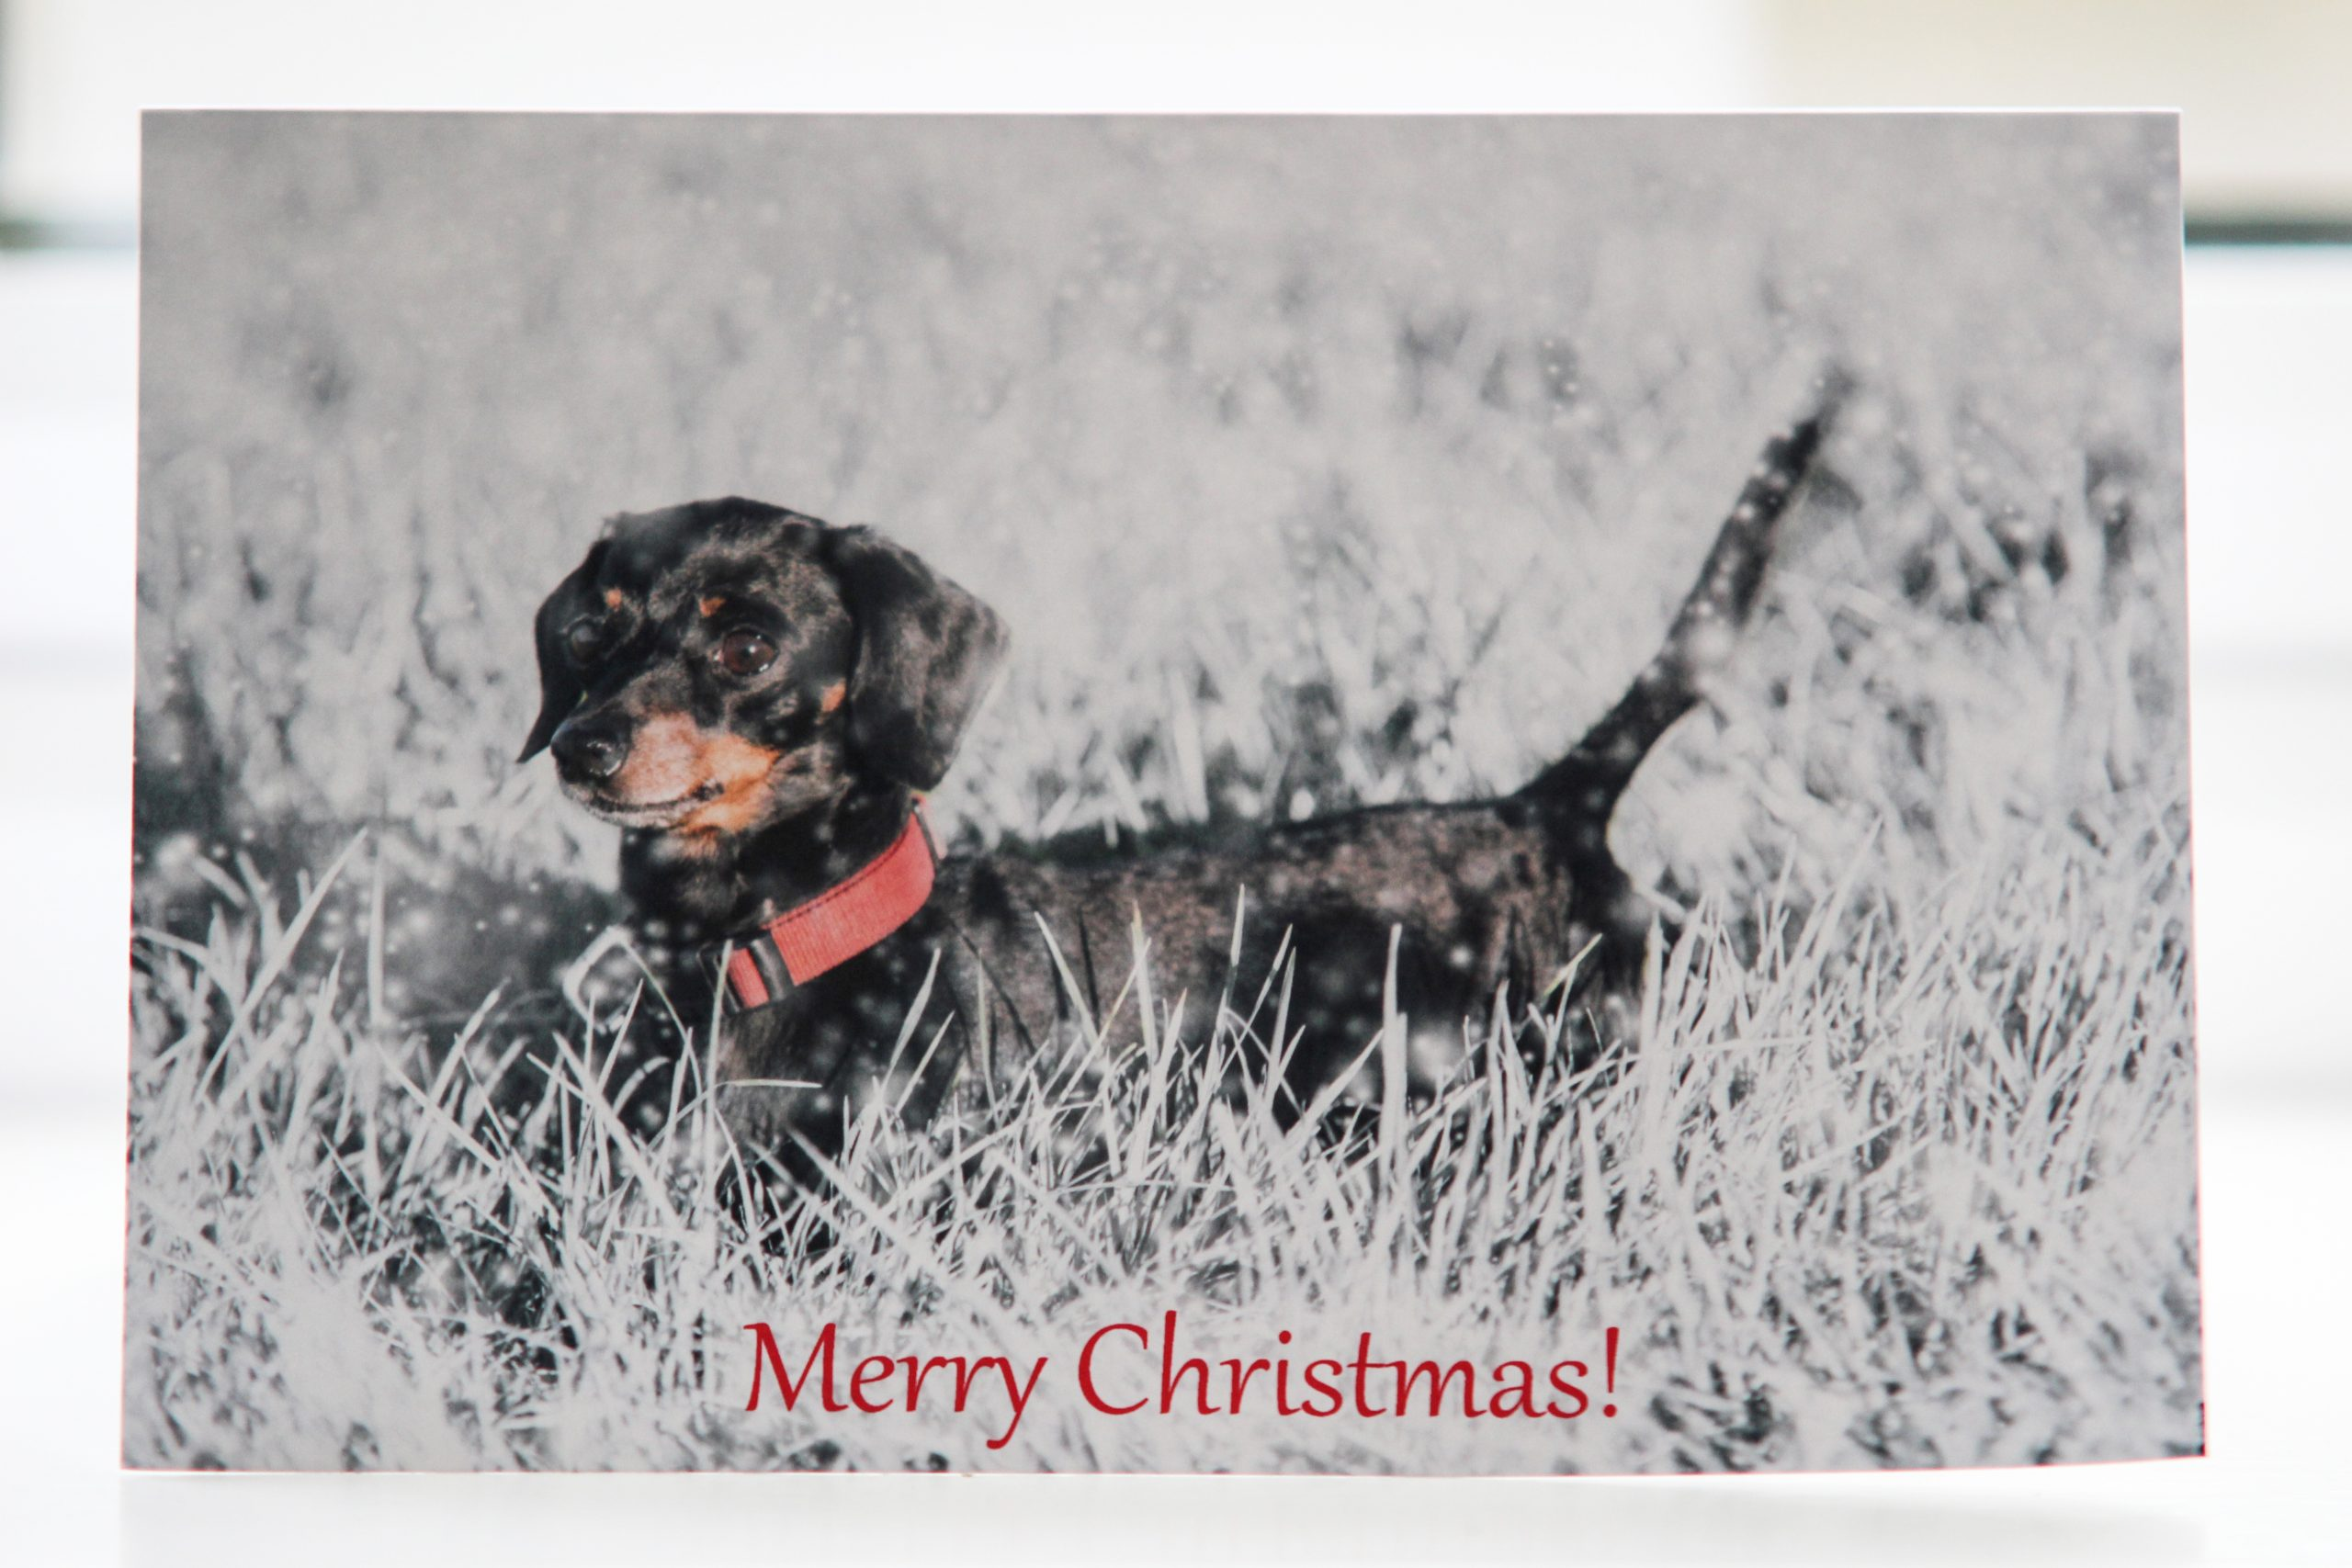 Personalised Christmas Cards with your own images and a snowy background